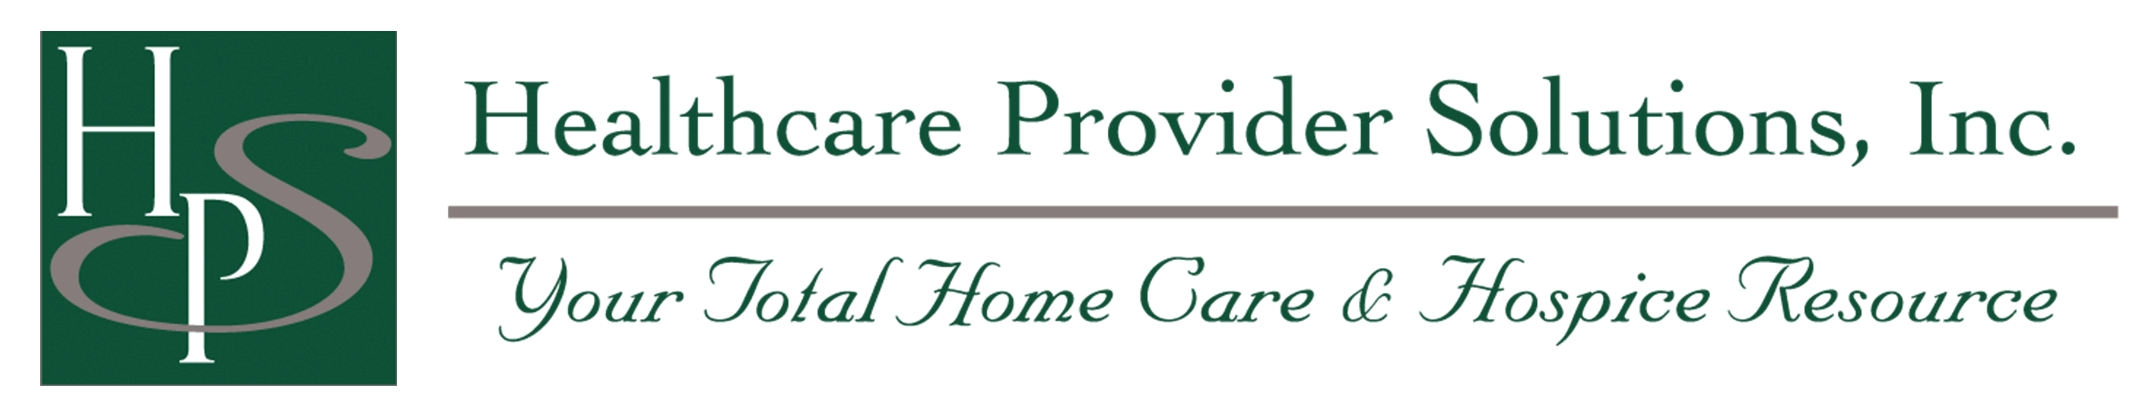 Free Downloads Home Care Hospice Resource Healthcare3abry